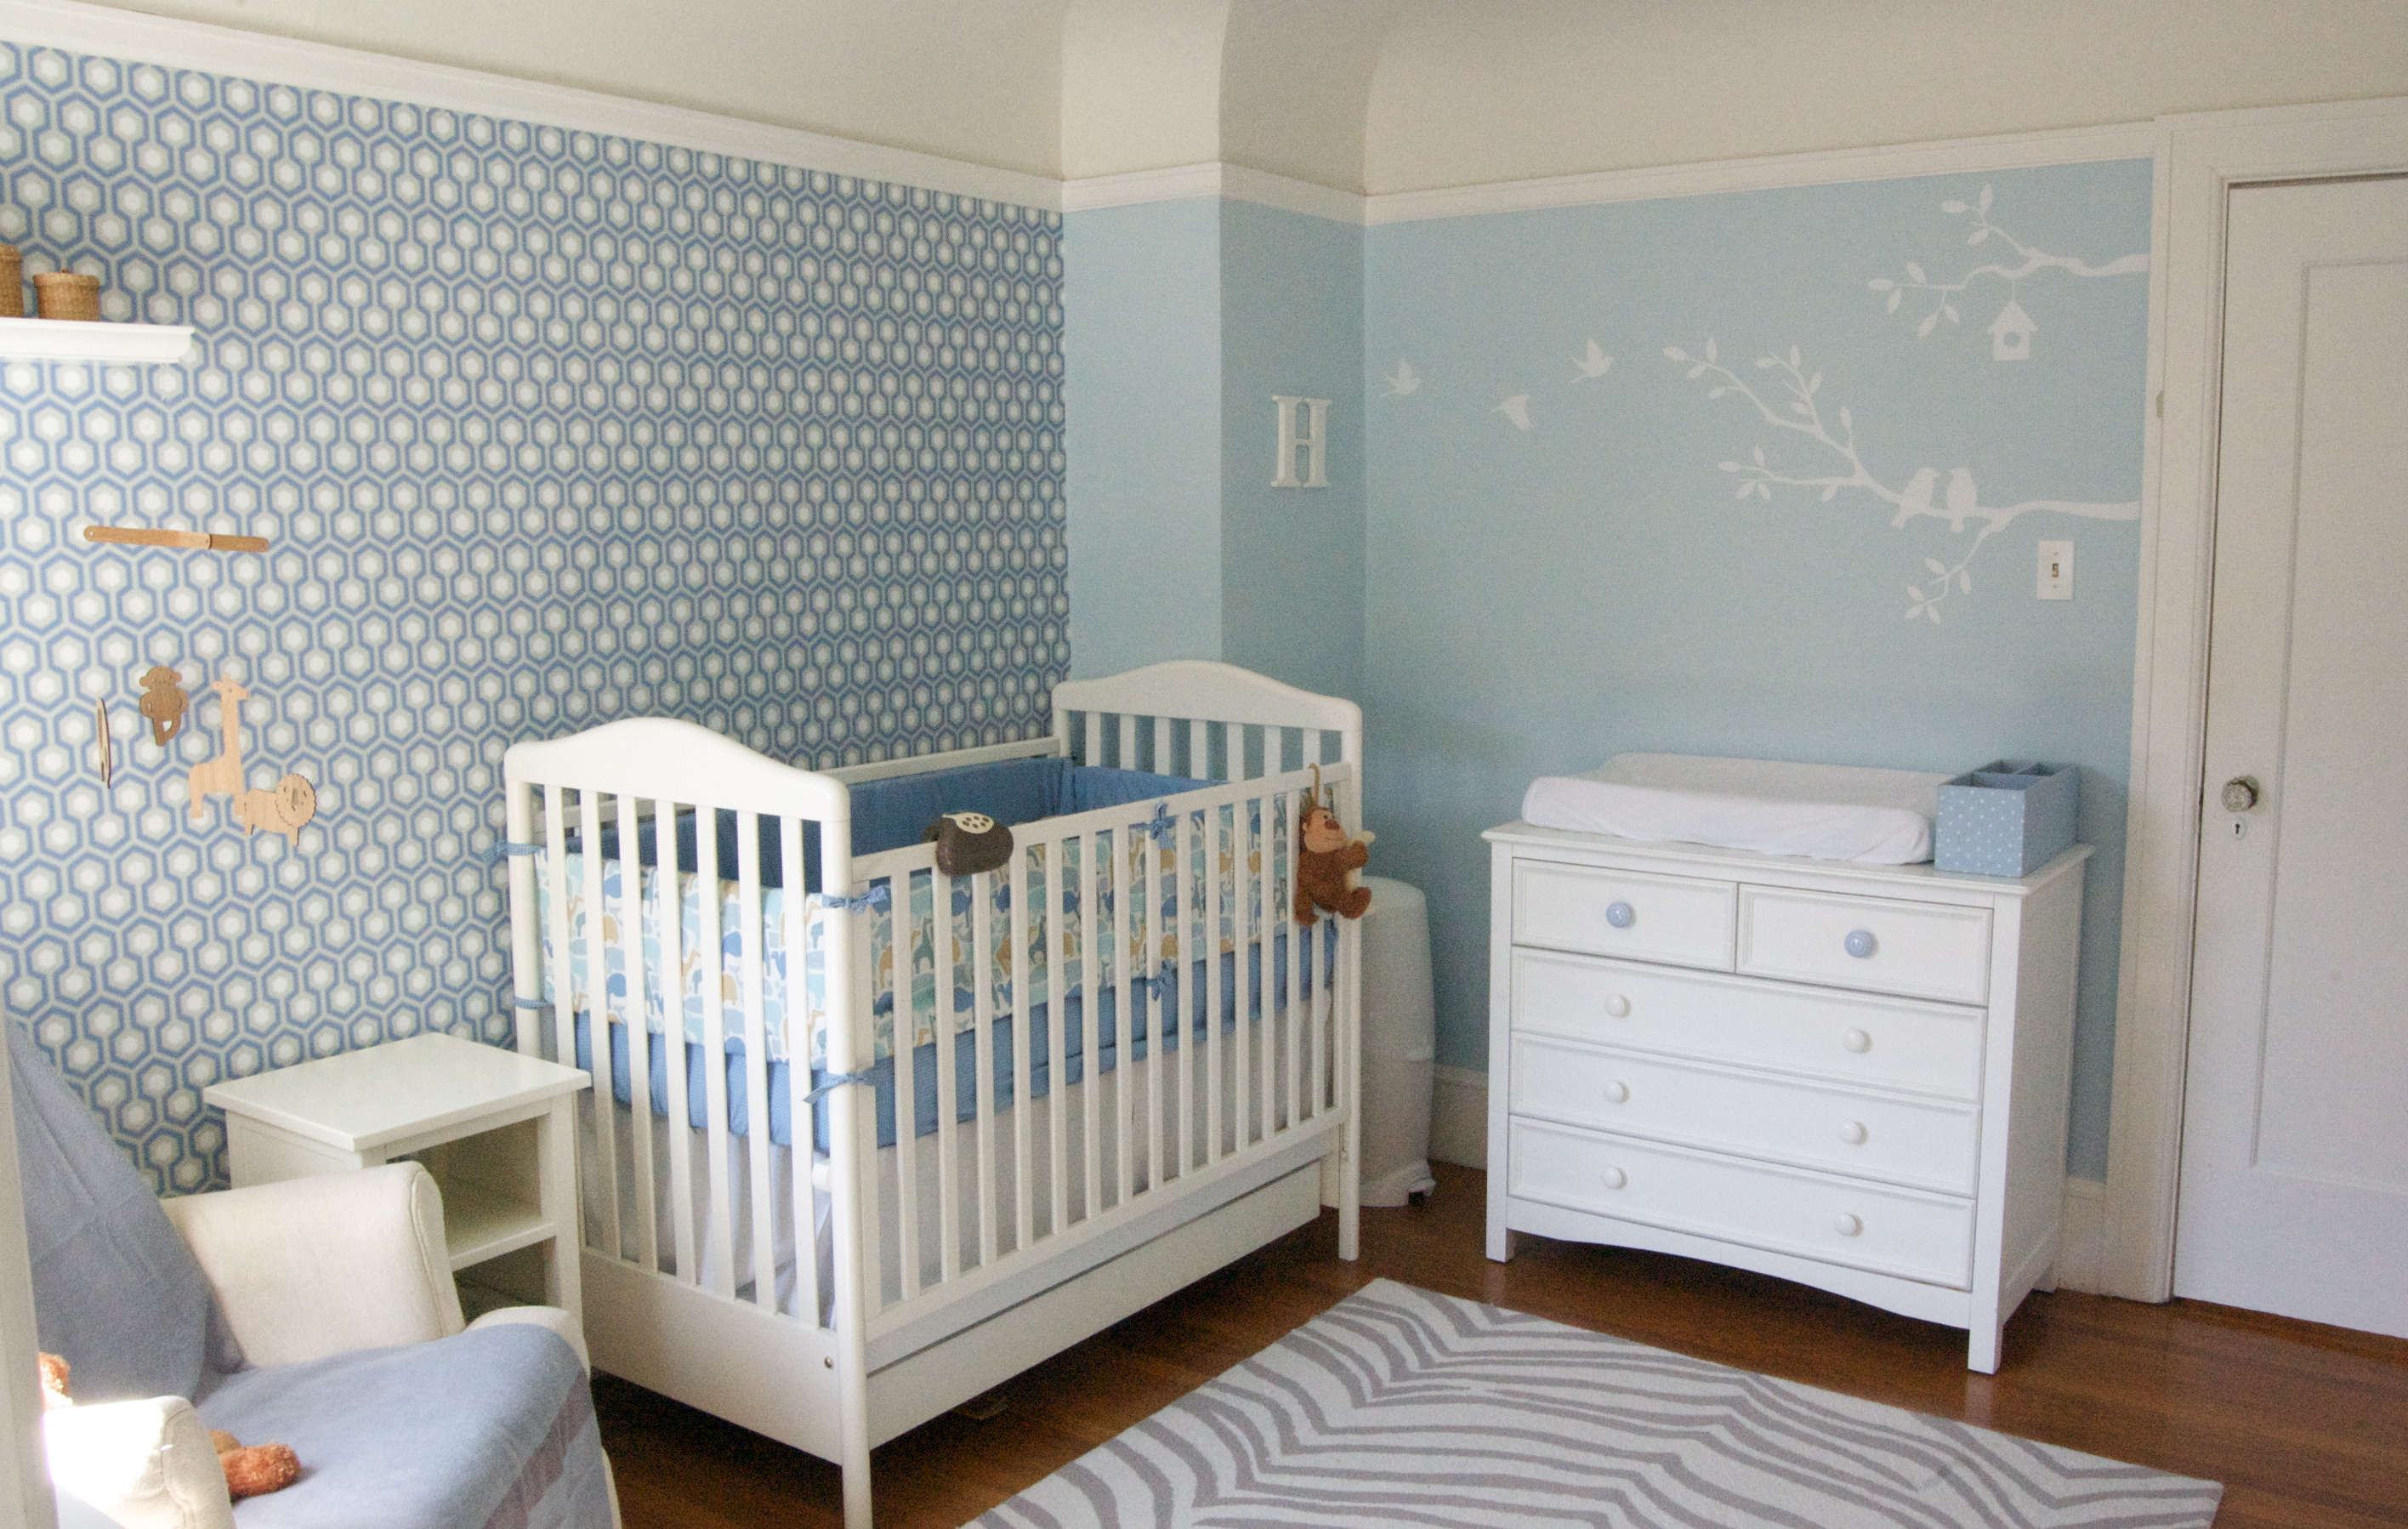 1000 images about baby room ideas on pinterest Baby designs for rooms